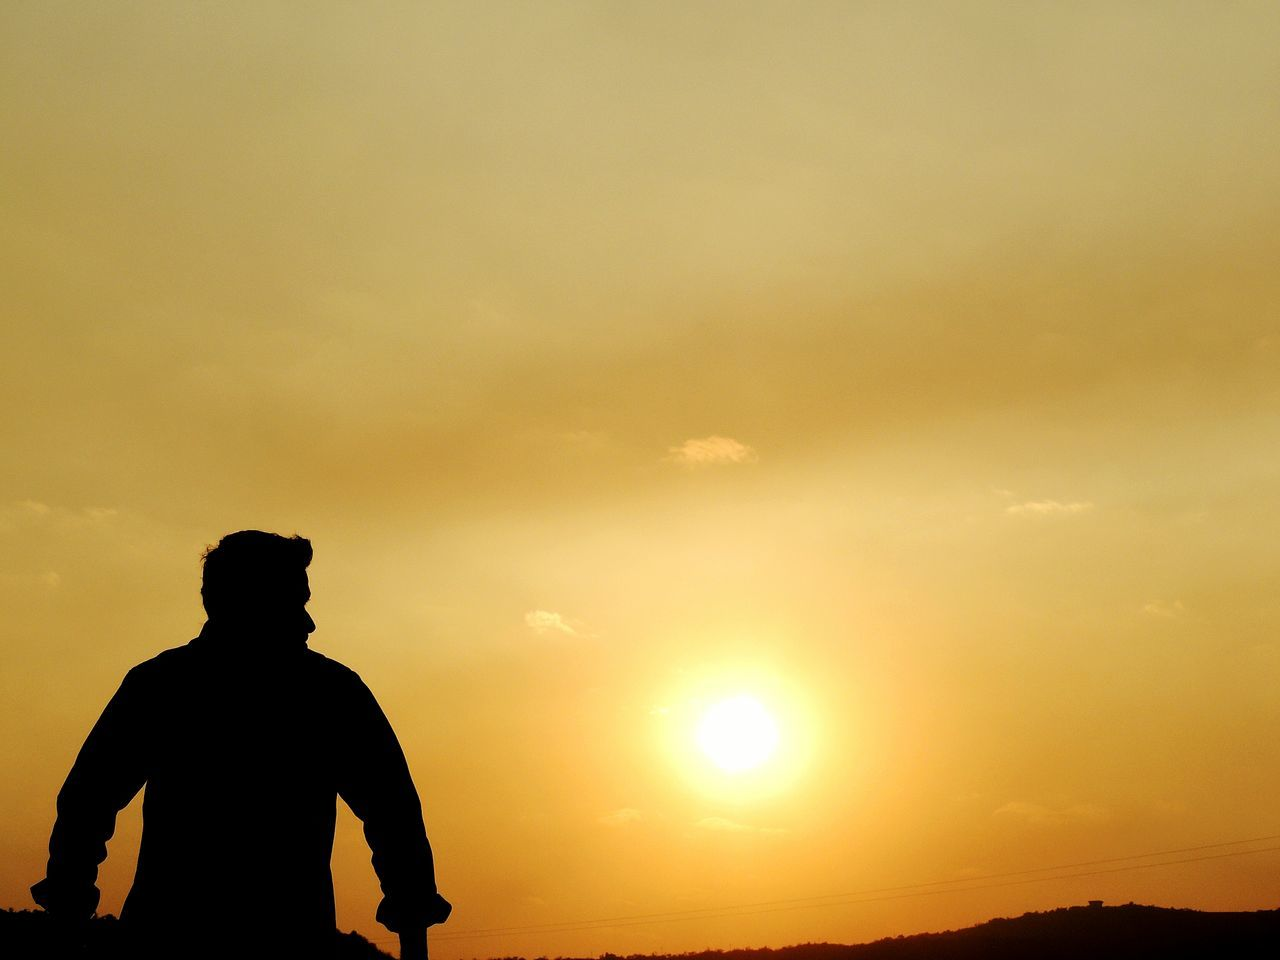 sunset, silhouette, sky, sun, real people, nature, men, outdoors, one person, leisure activity, beauty in nature, scenics, lifestyles, cloud - sky, sunlight, low angle view, sitting, one man only, day, people